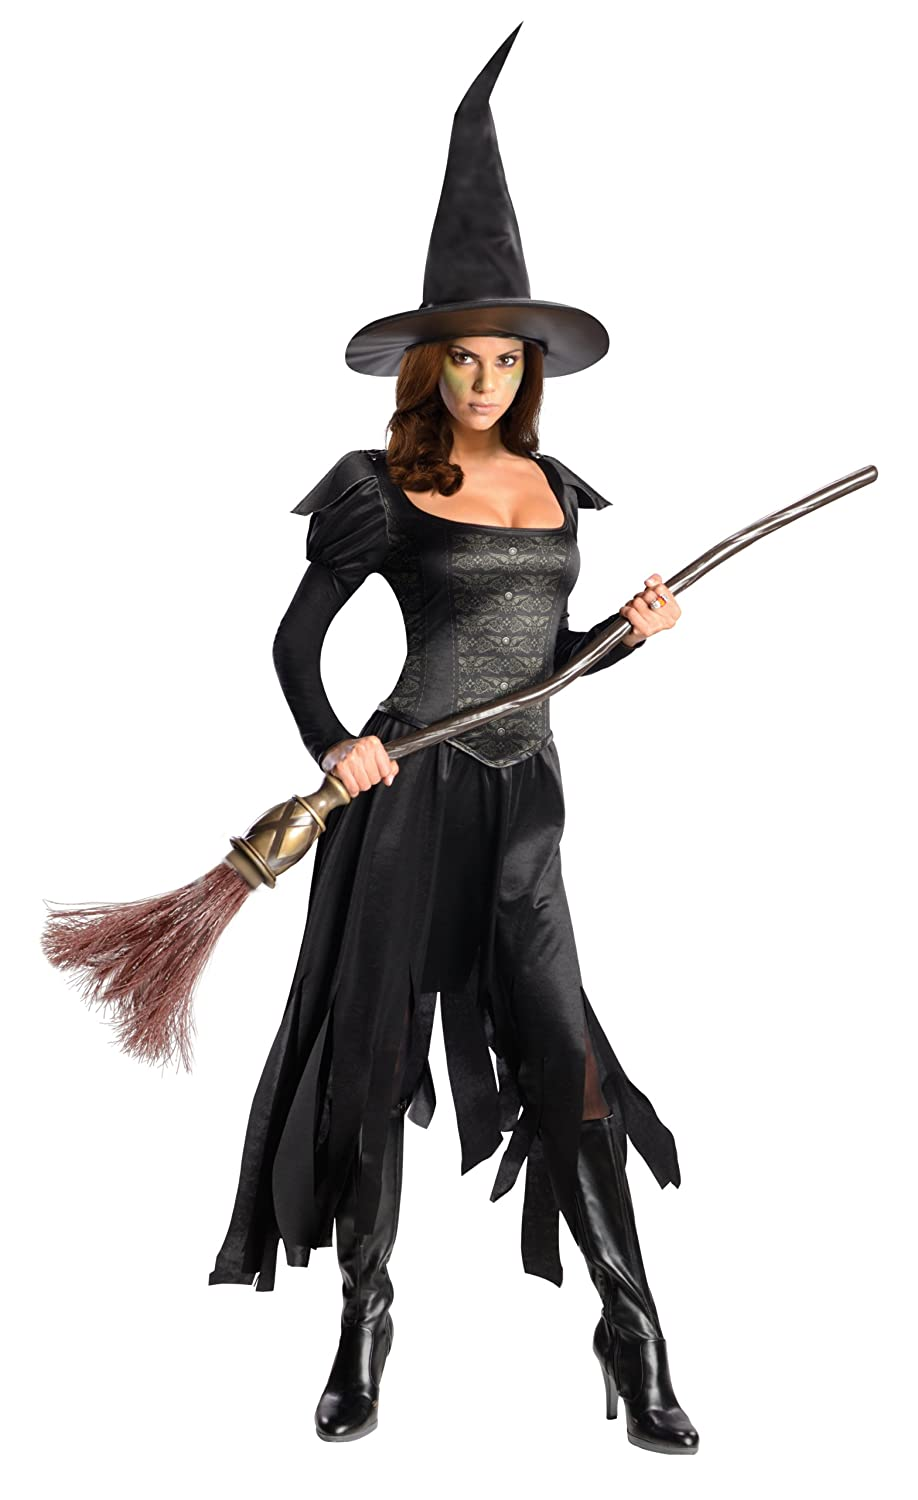 Amazon.com Disney Rubieu0027s Costume Oz The Great and Powerful Adult Witch Dress and Hat Clothing  sc 1 st  Amazon.com & Amazon.com: Disney Rubieu0027s Costume Oz The Great and Powerful Adult ...